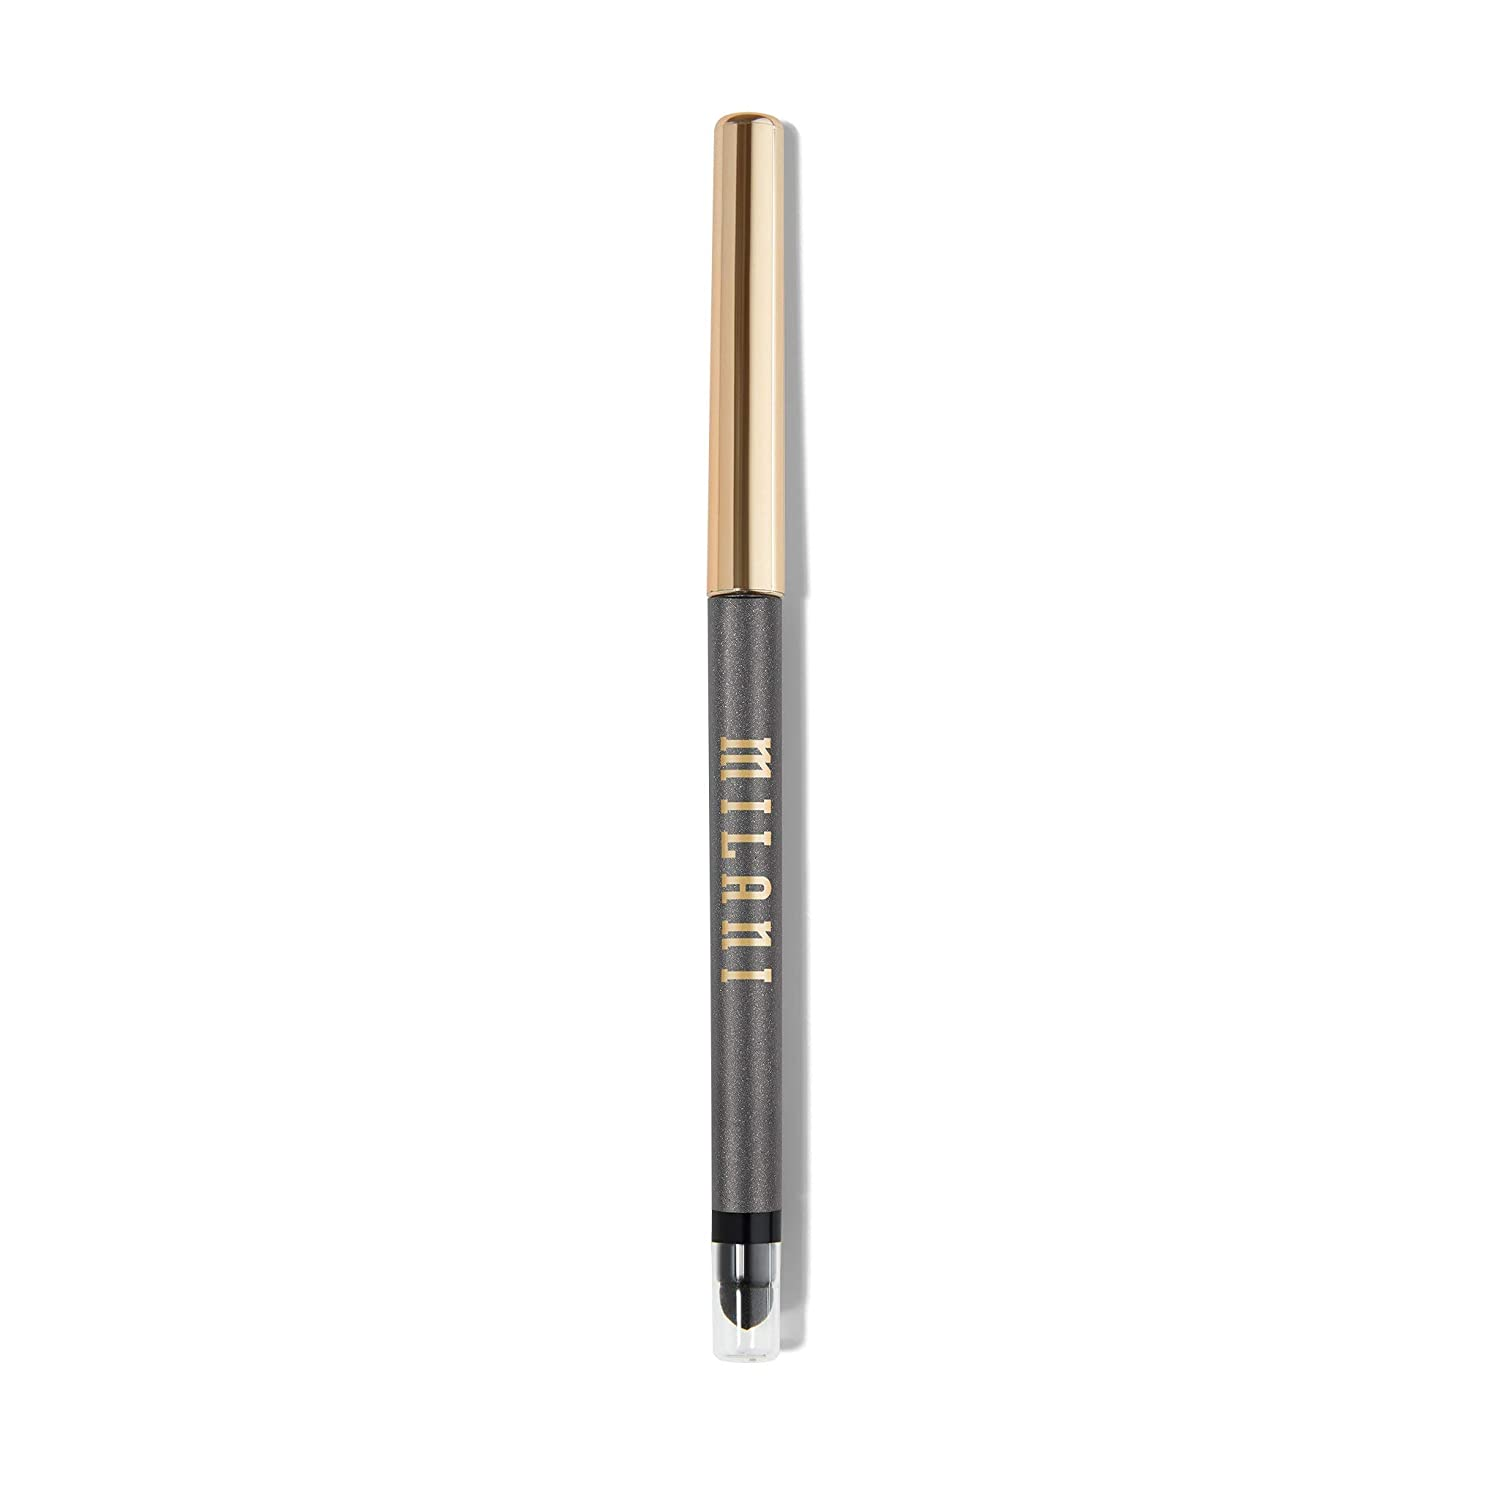 Milani Stay Put Eyeliner - Silver Foxy (0.01 Ounce) Cruelty-Free Self-Sharpening Eye Pencil with Built-In Smudger - Line & Define Eyes with High Pigment Shades for Long-Lasting Wear